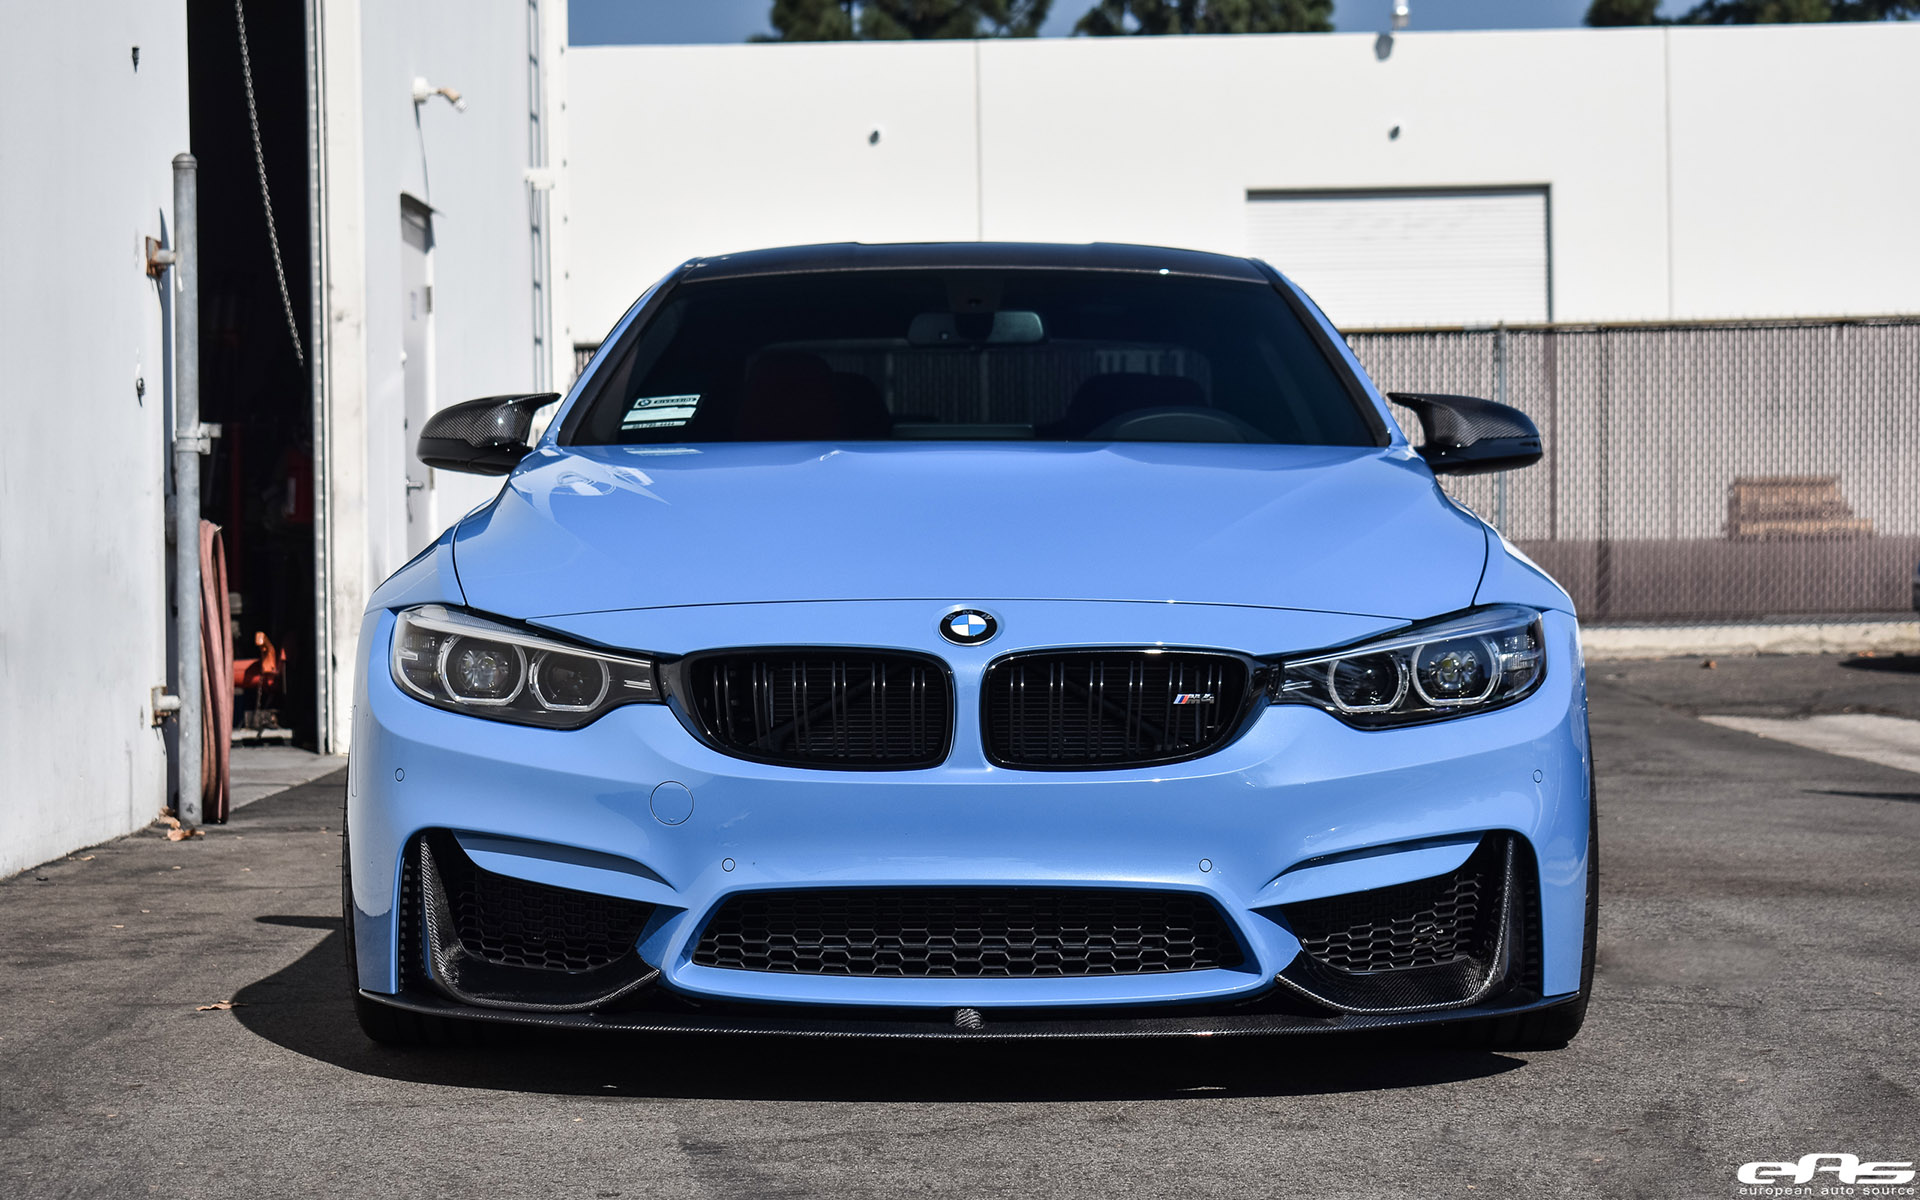 Yas Marina Blue BMW M4 Build by At European Auto Source Image 8